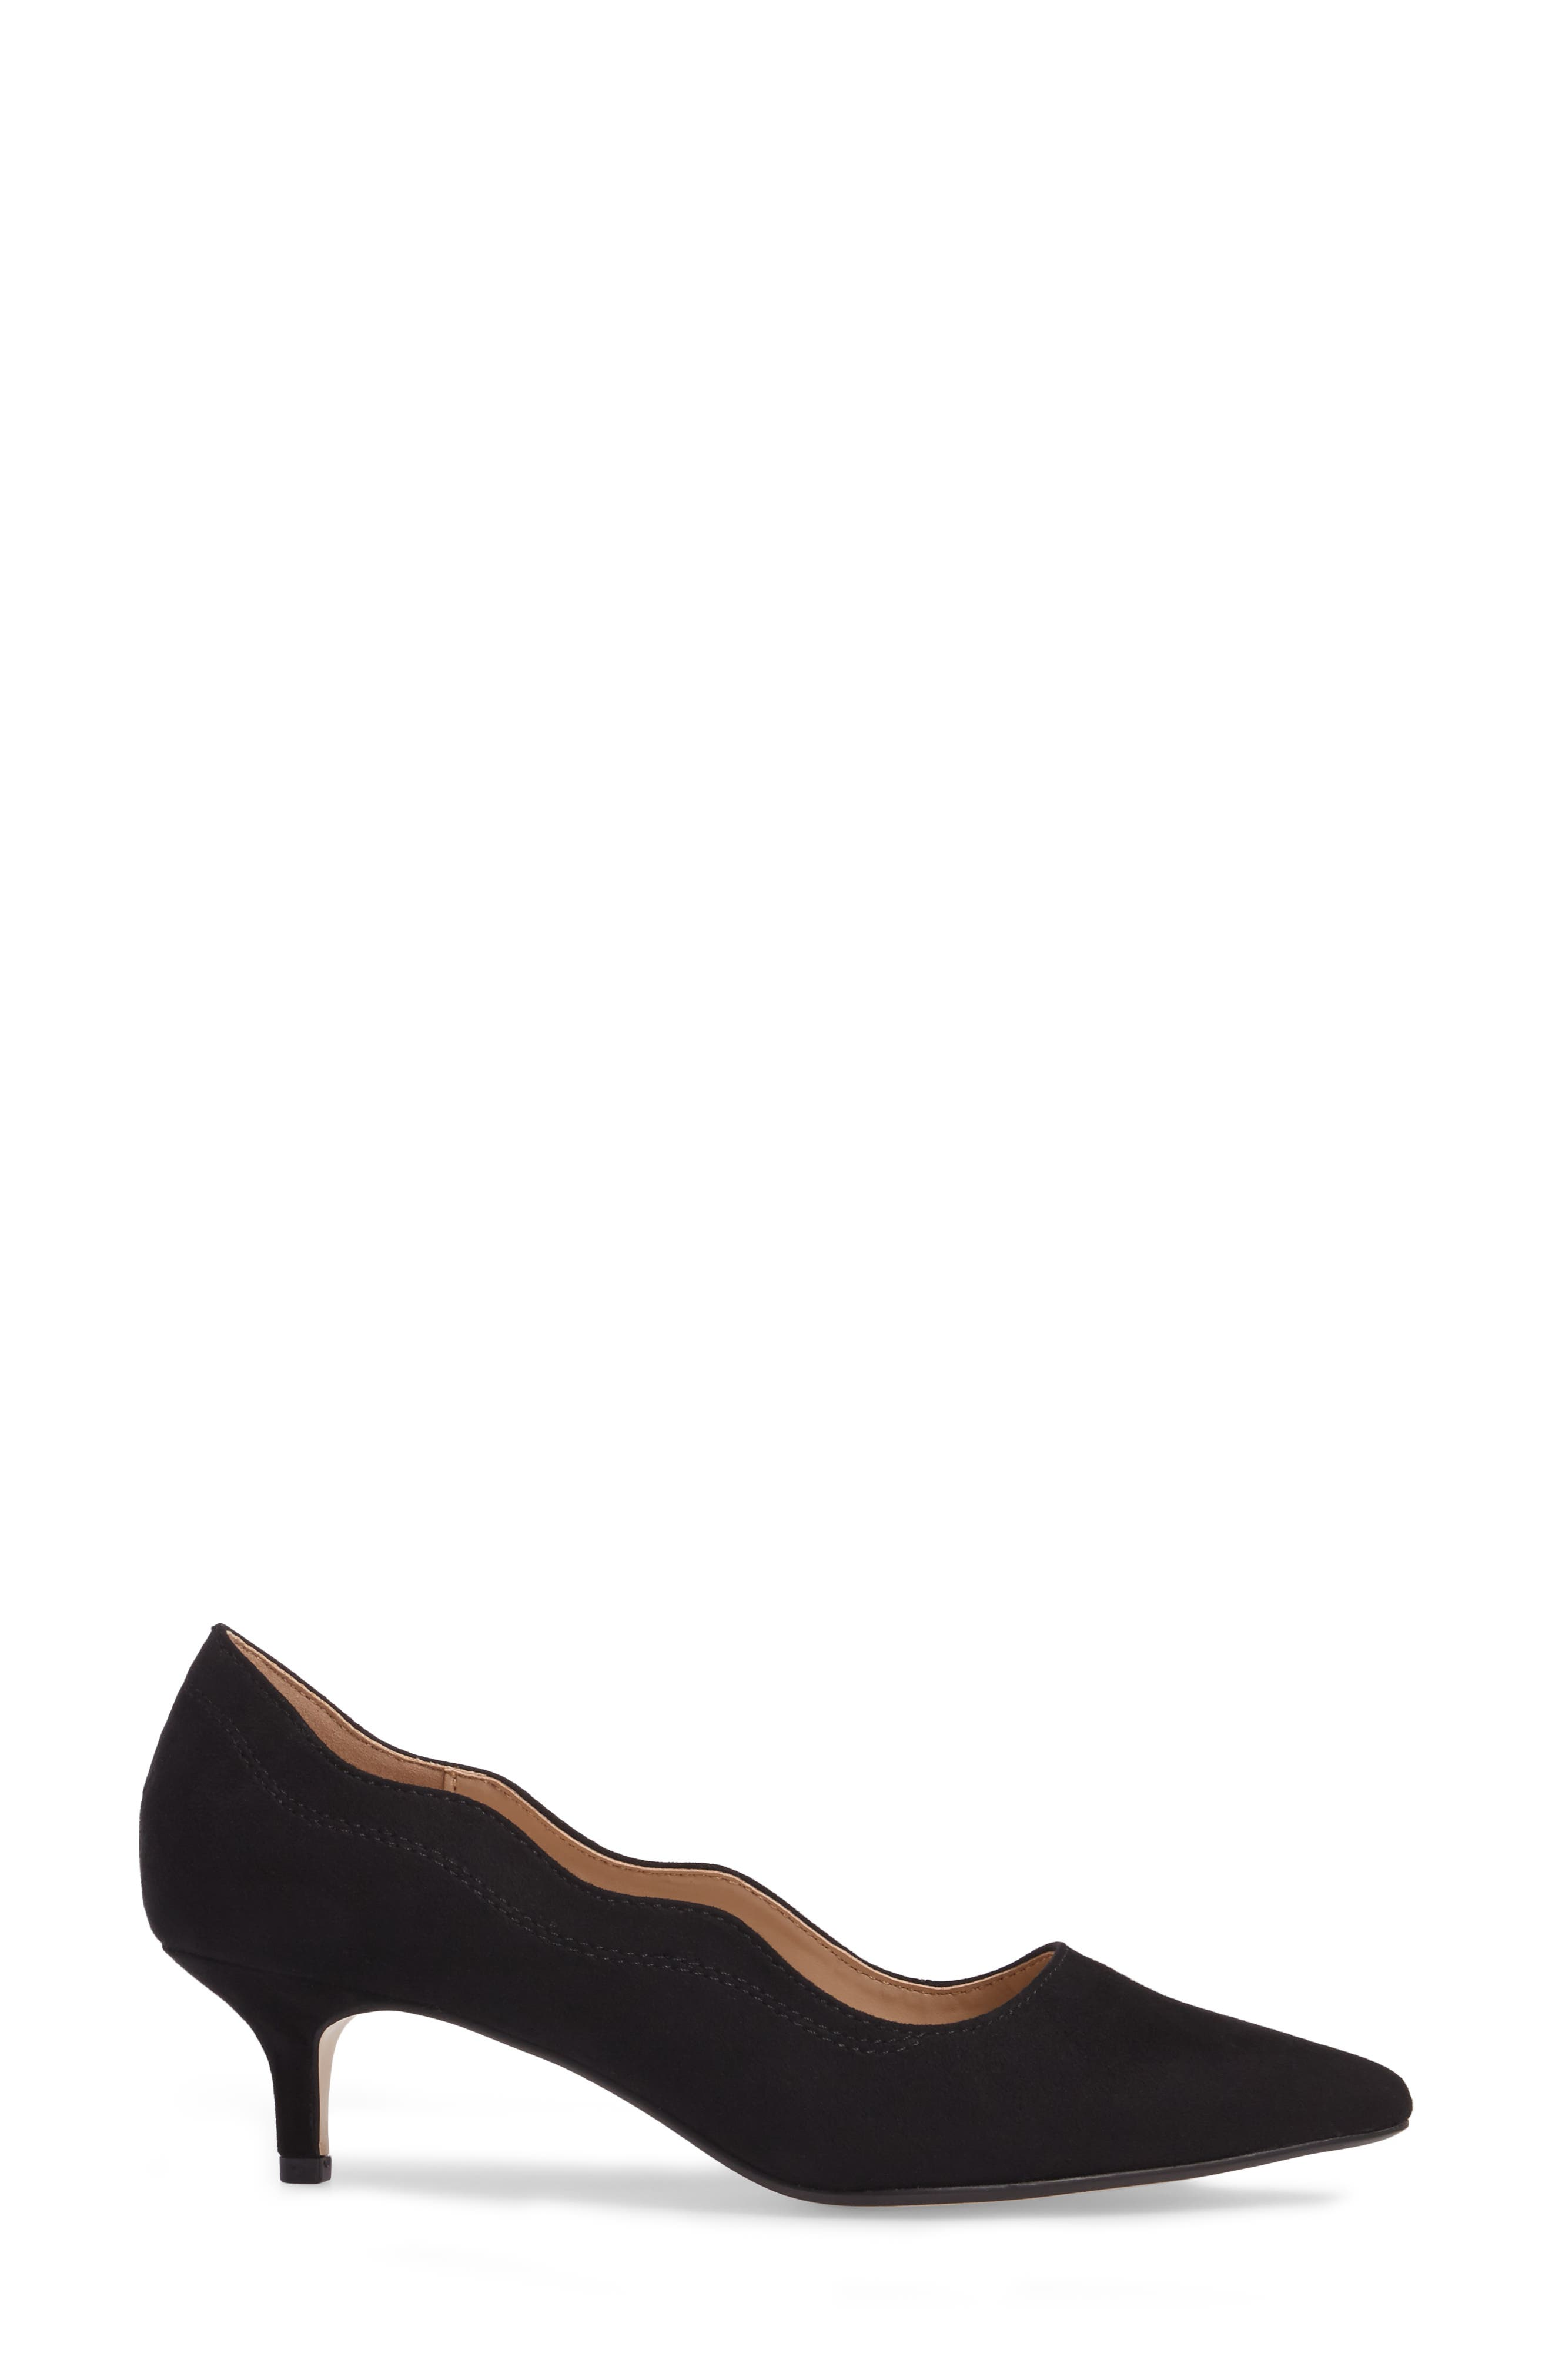 Stormm Pointy Toe Pump,                             Alternate thumbnail 3, color,                             003